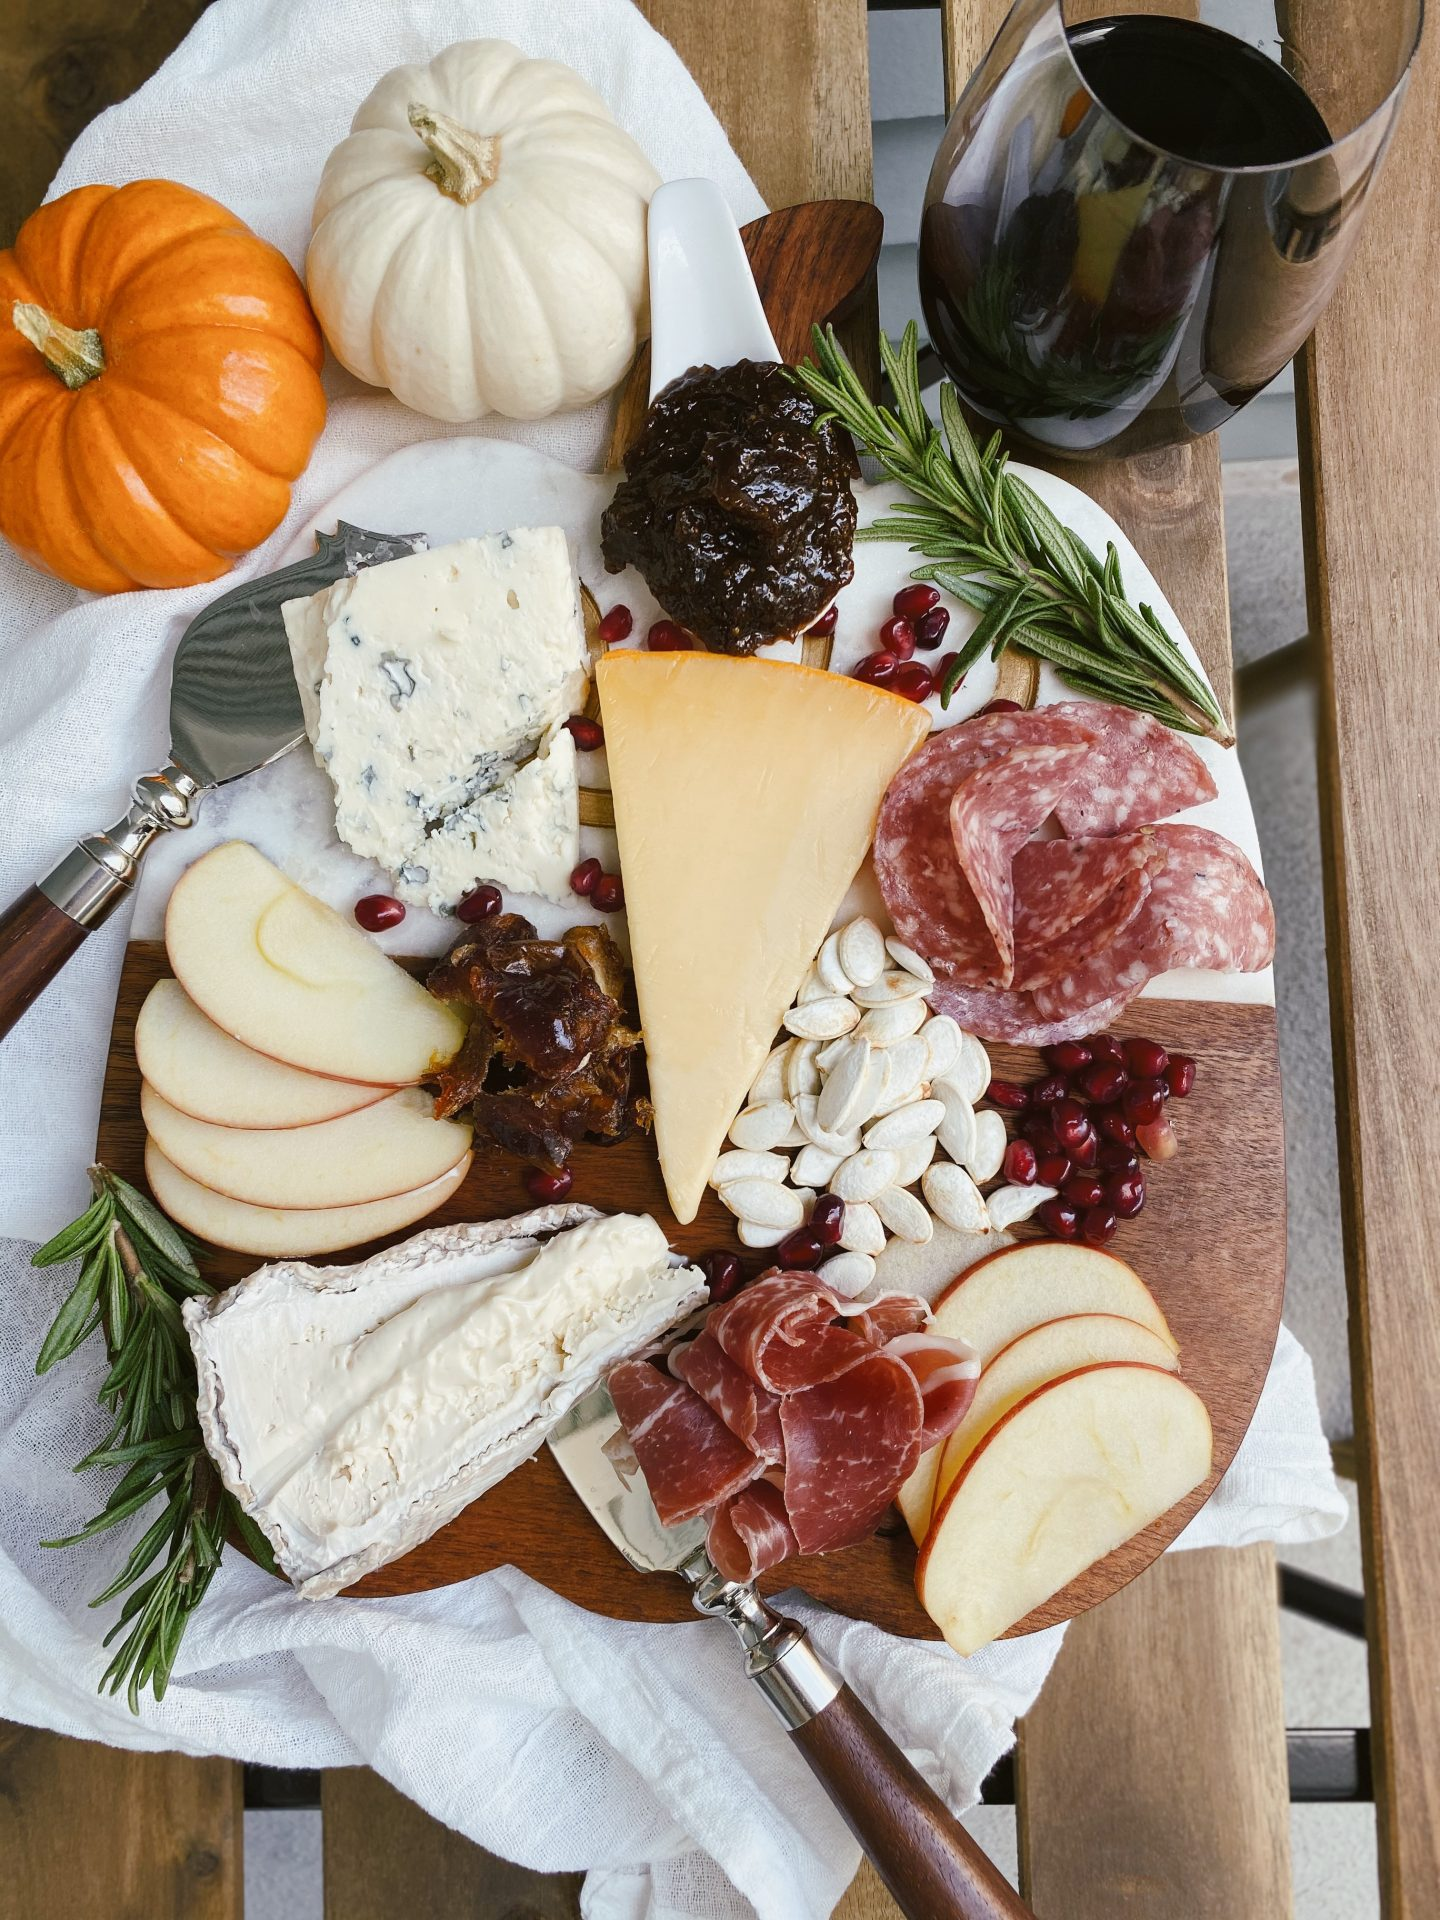 How to Make a Fall Cheeseboard